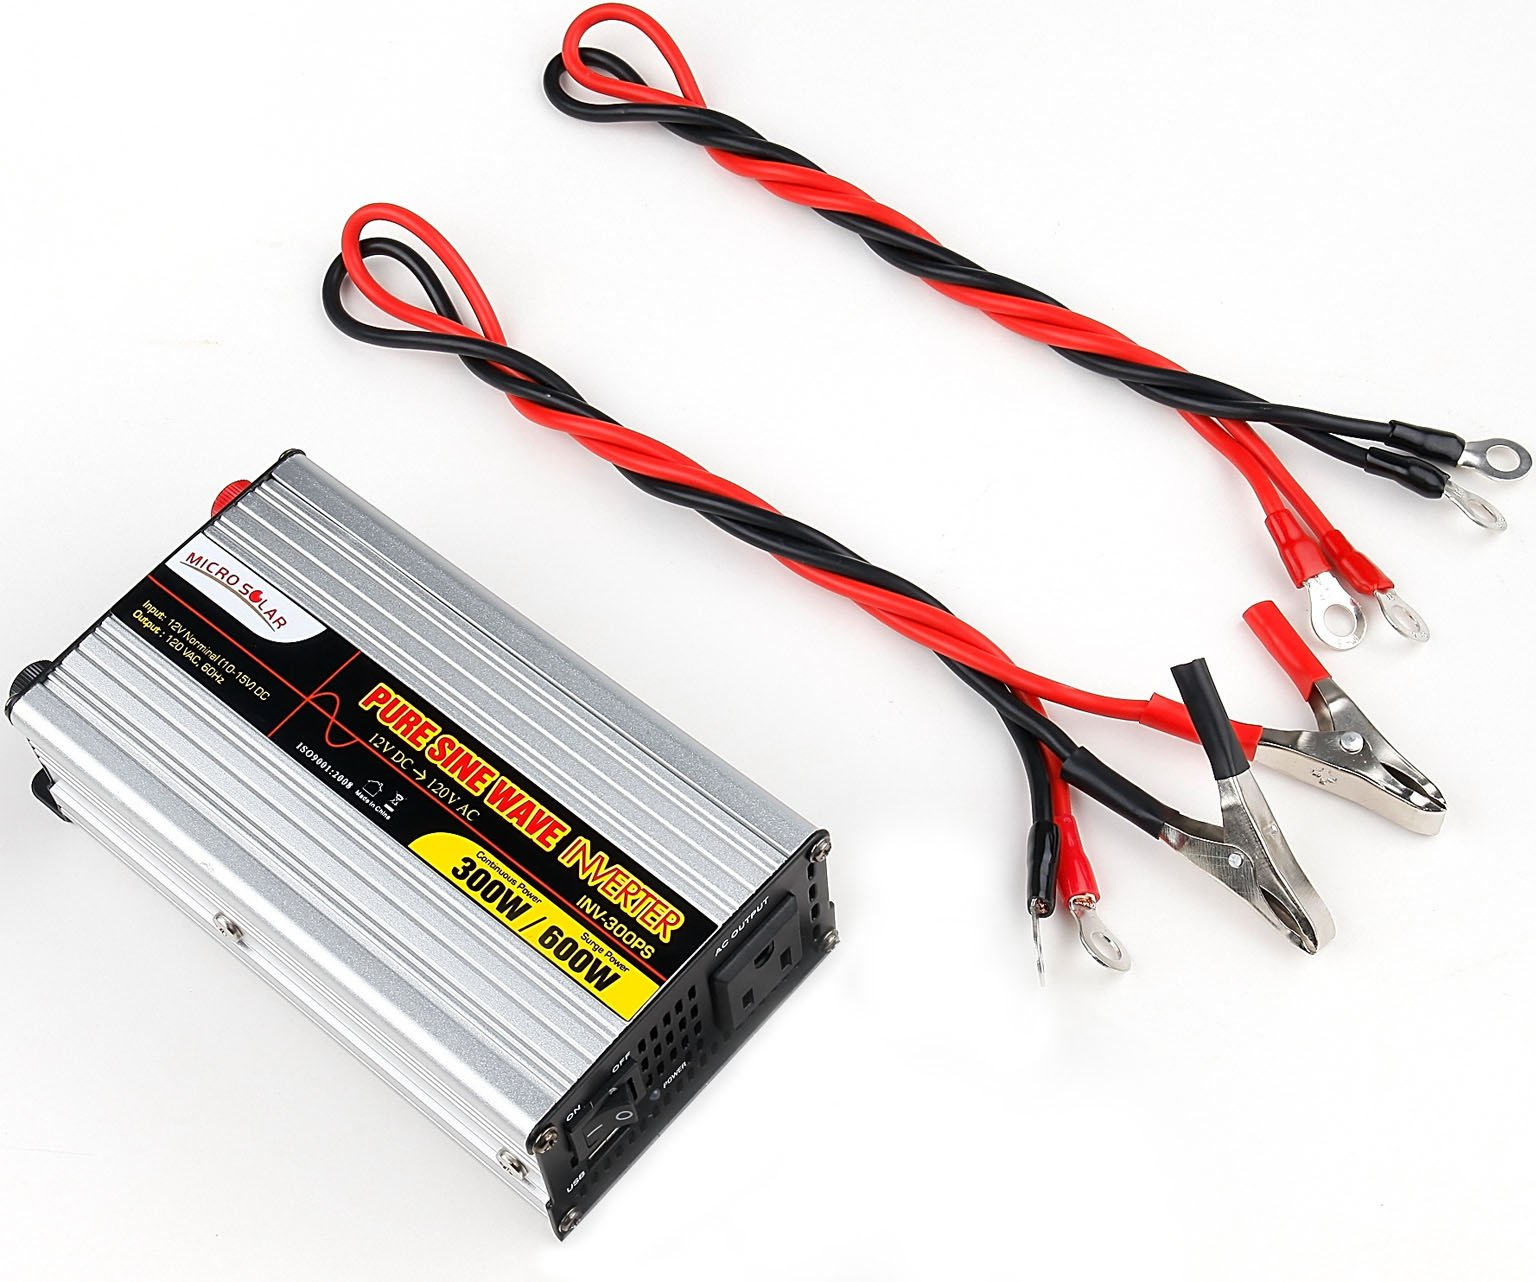 MicroSolar - 300W(Peak 600w) Pure Sine Wave Inverter - with Two Wires